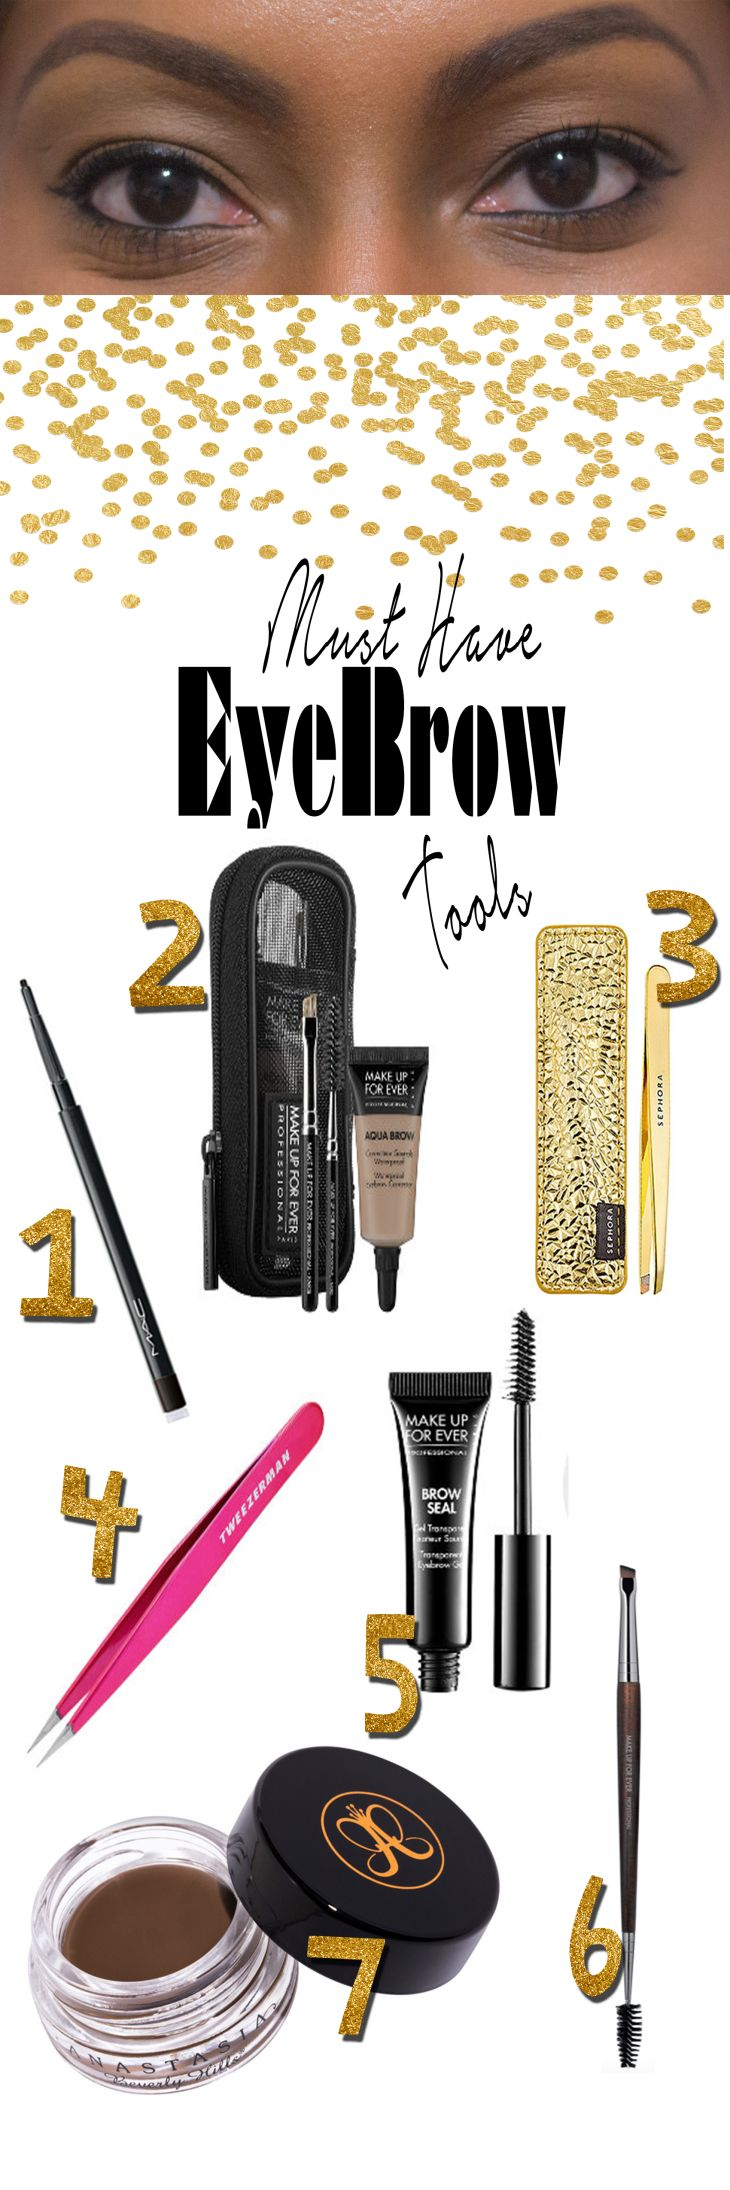 www.beingmelody.com | Top Ten Tuesday: Must Have Eyebrow Tools. |Eyebrows are an important part of your face. Check out which tools I'm using to sculpt, shape and fill my eyebrows.http://www.beingmelody.com